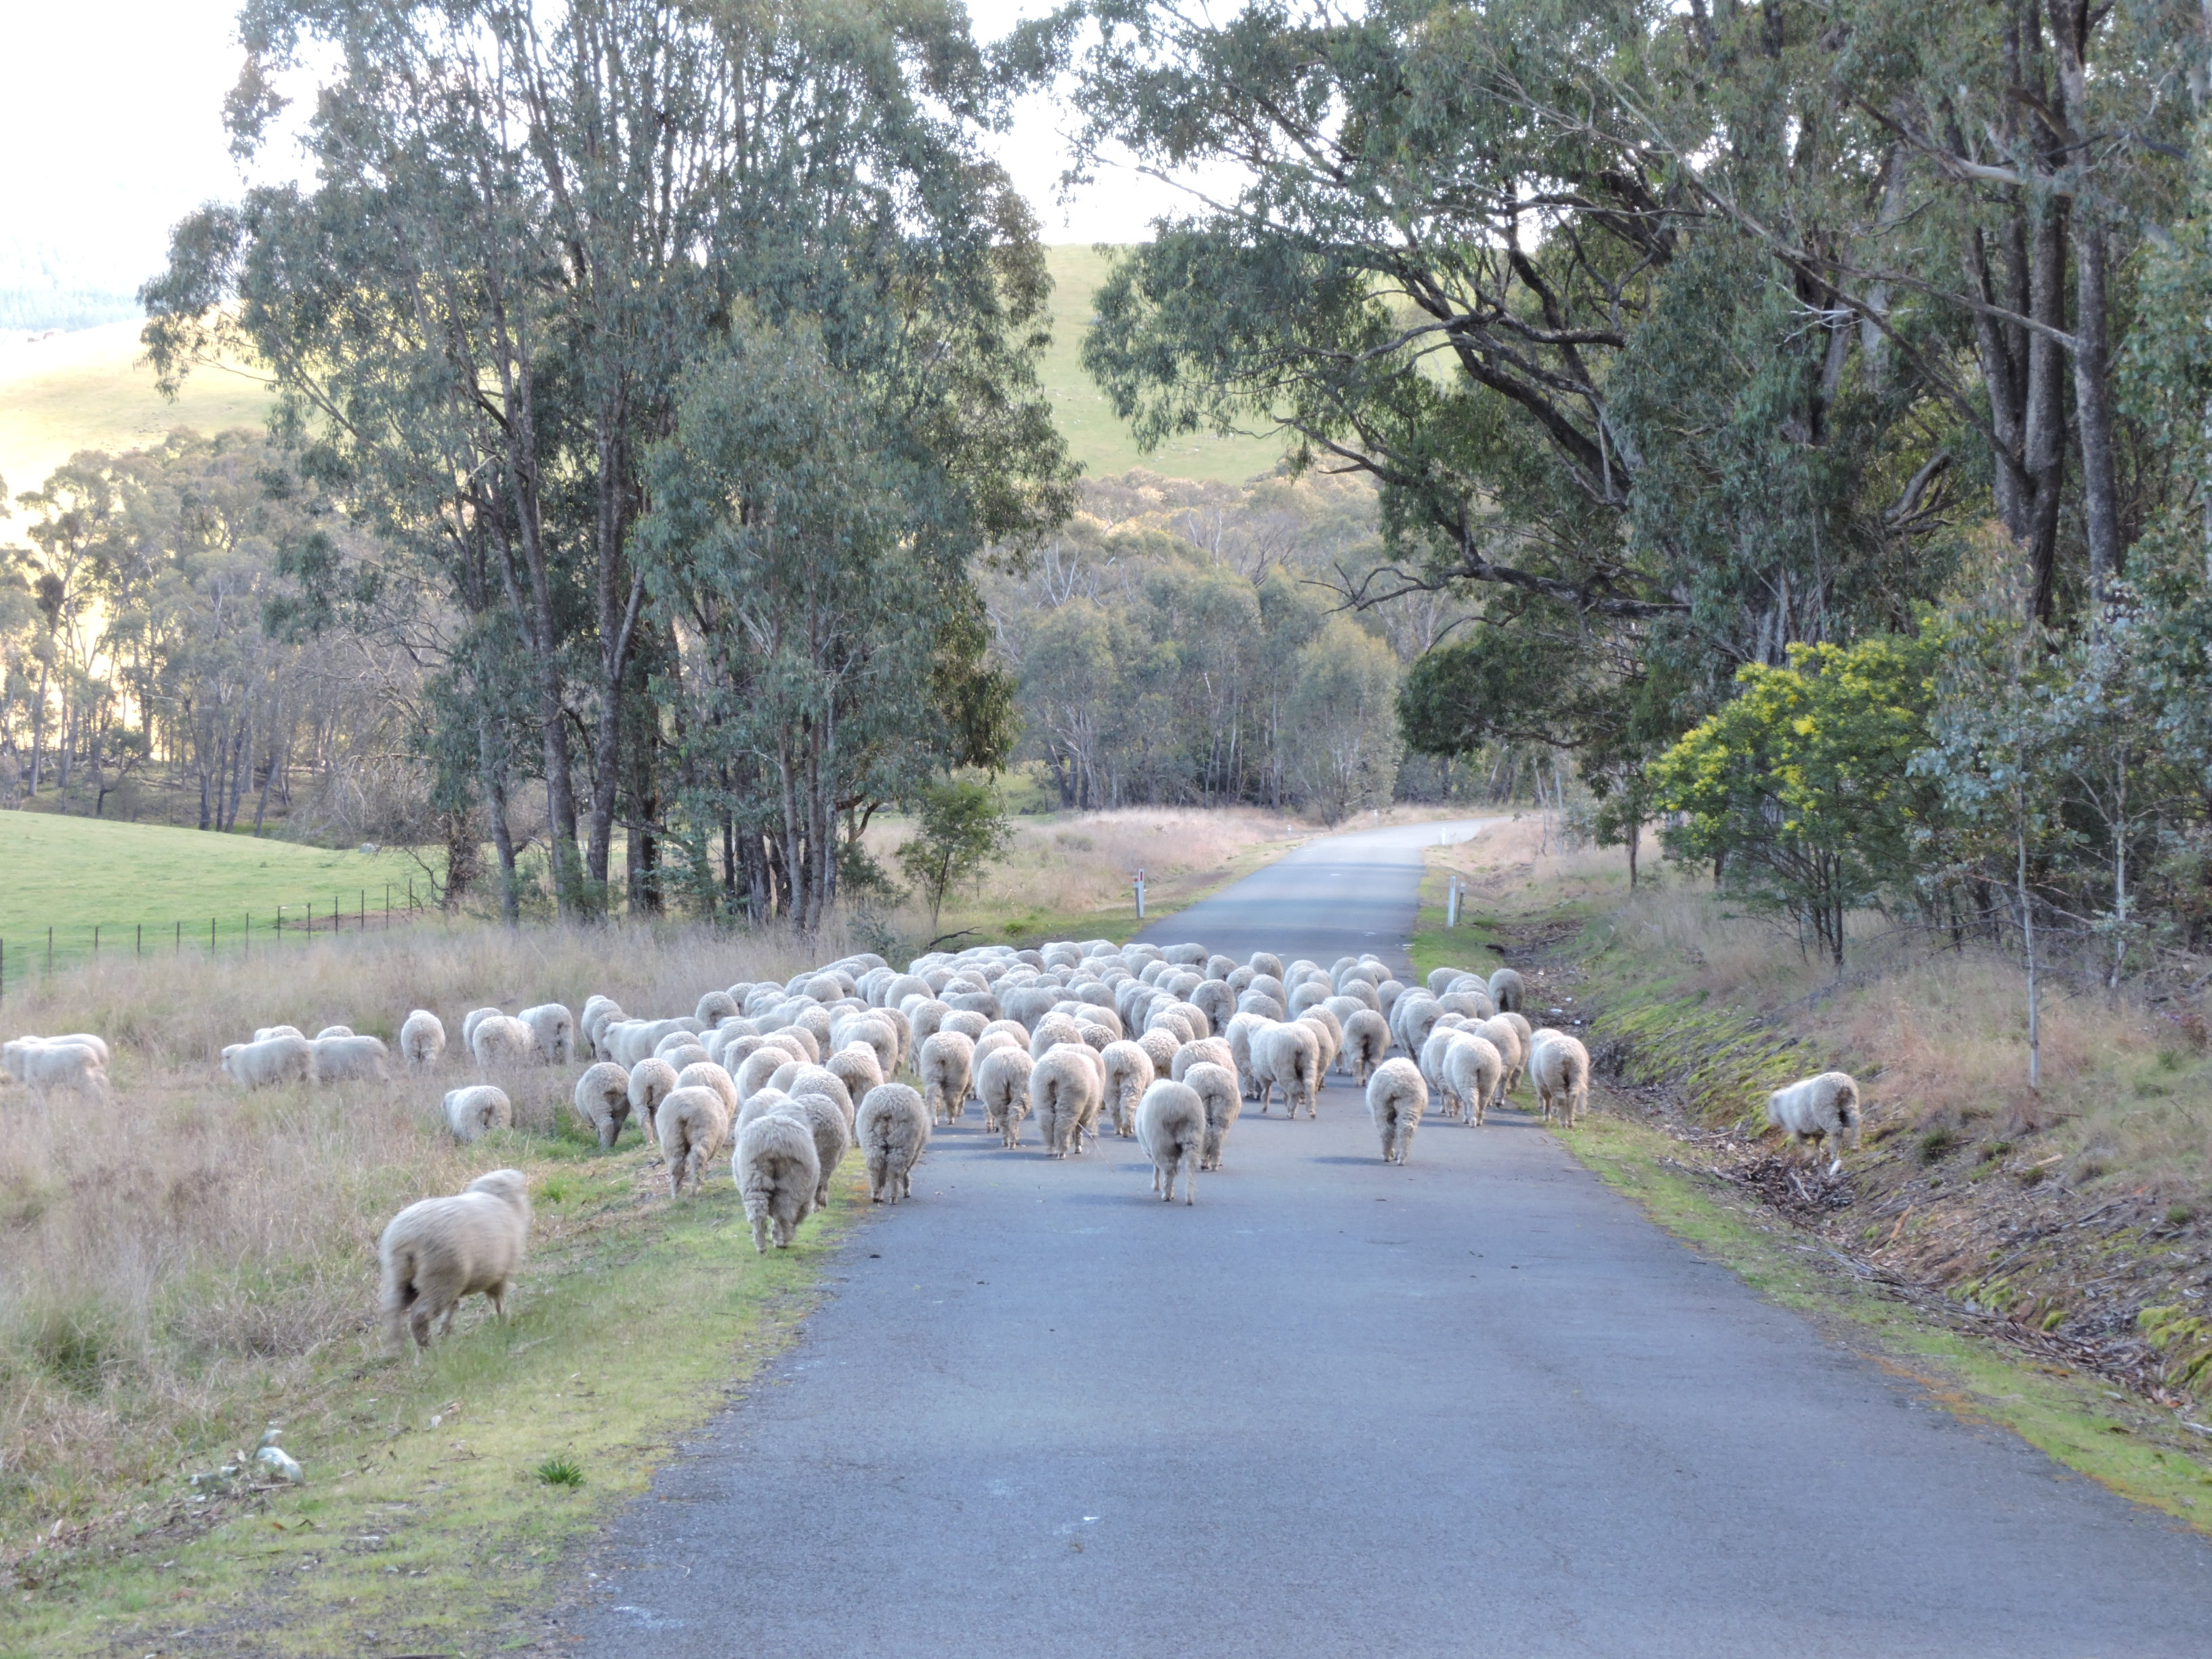 Mustering along the road